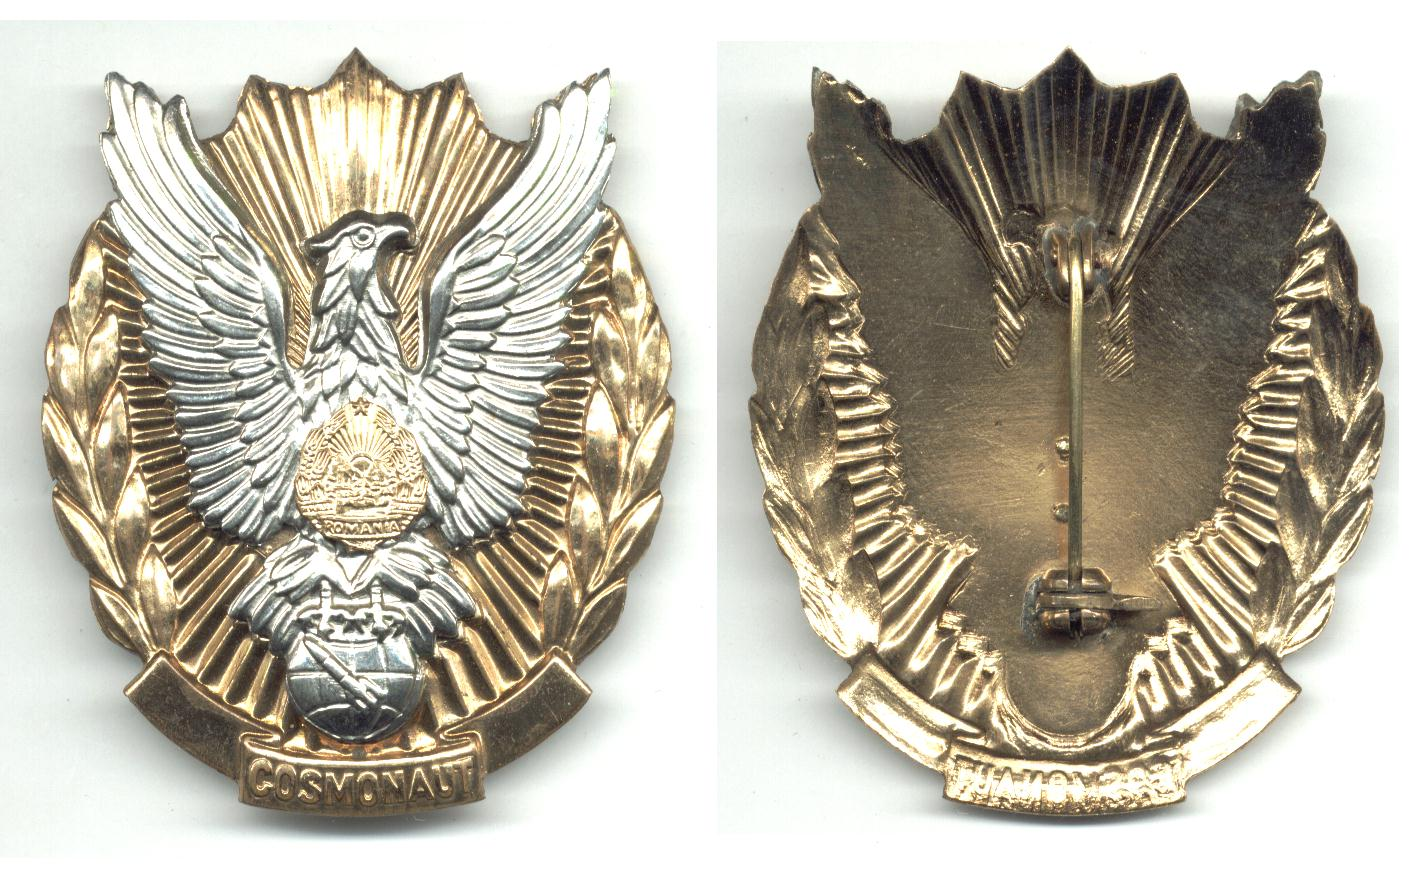 astronaut wings insignia - photo #49